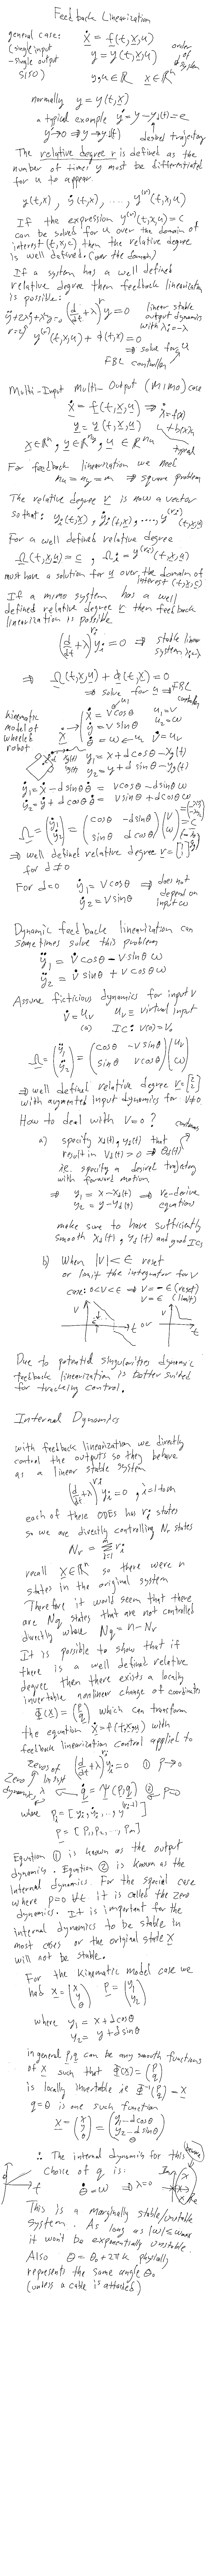 Solutions Mechanics For Engineers Dynamics Lectx Con